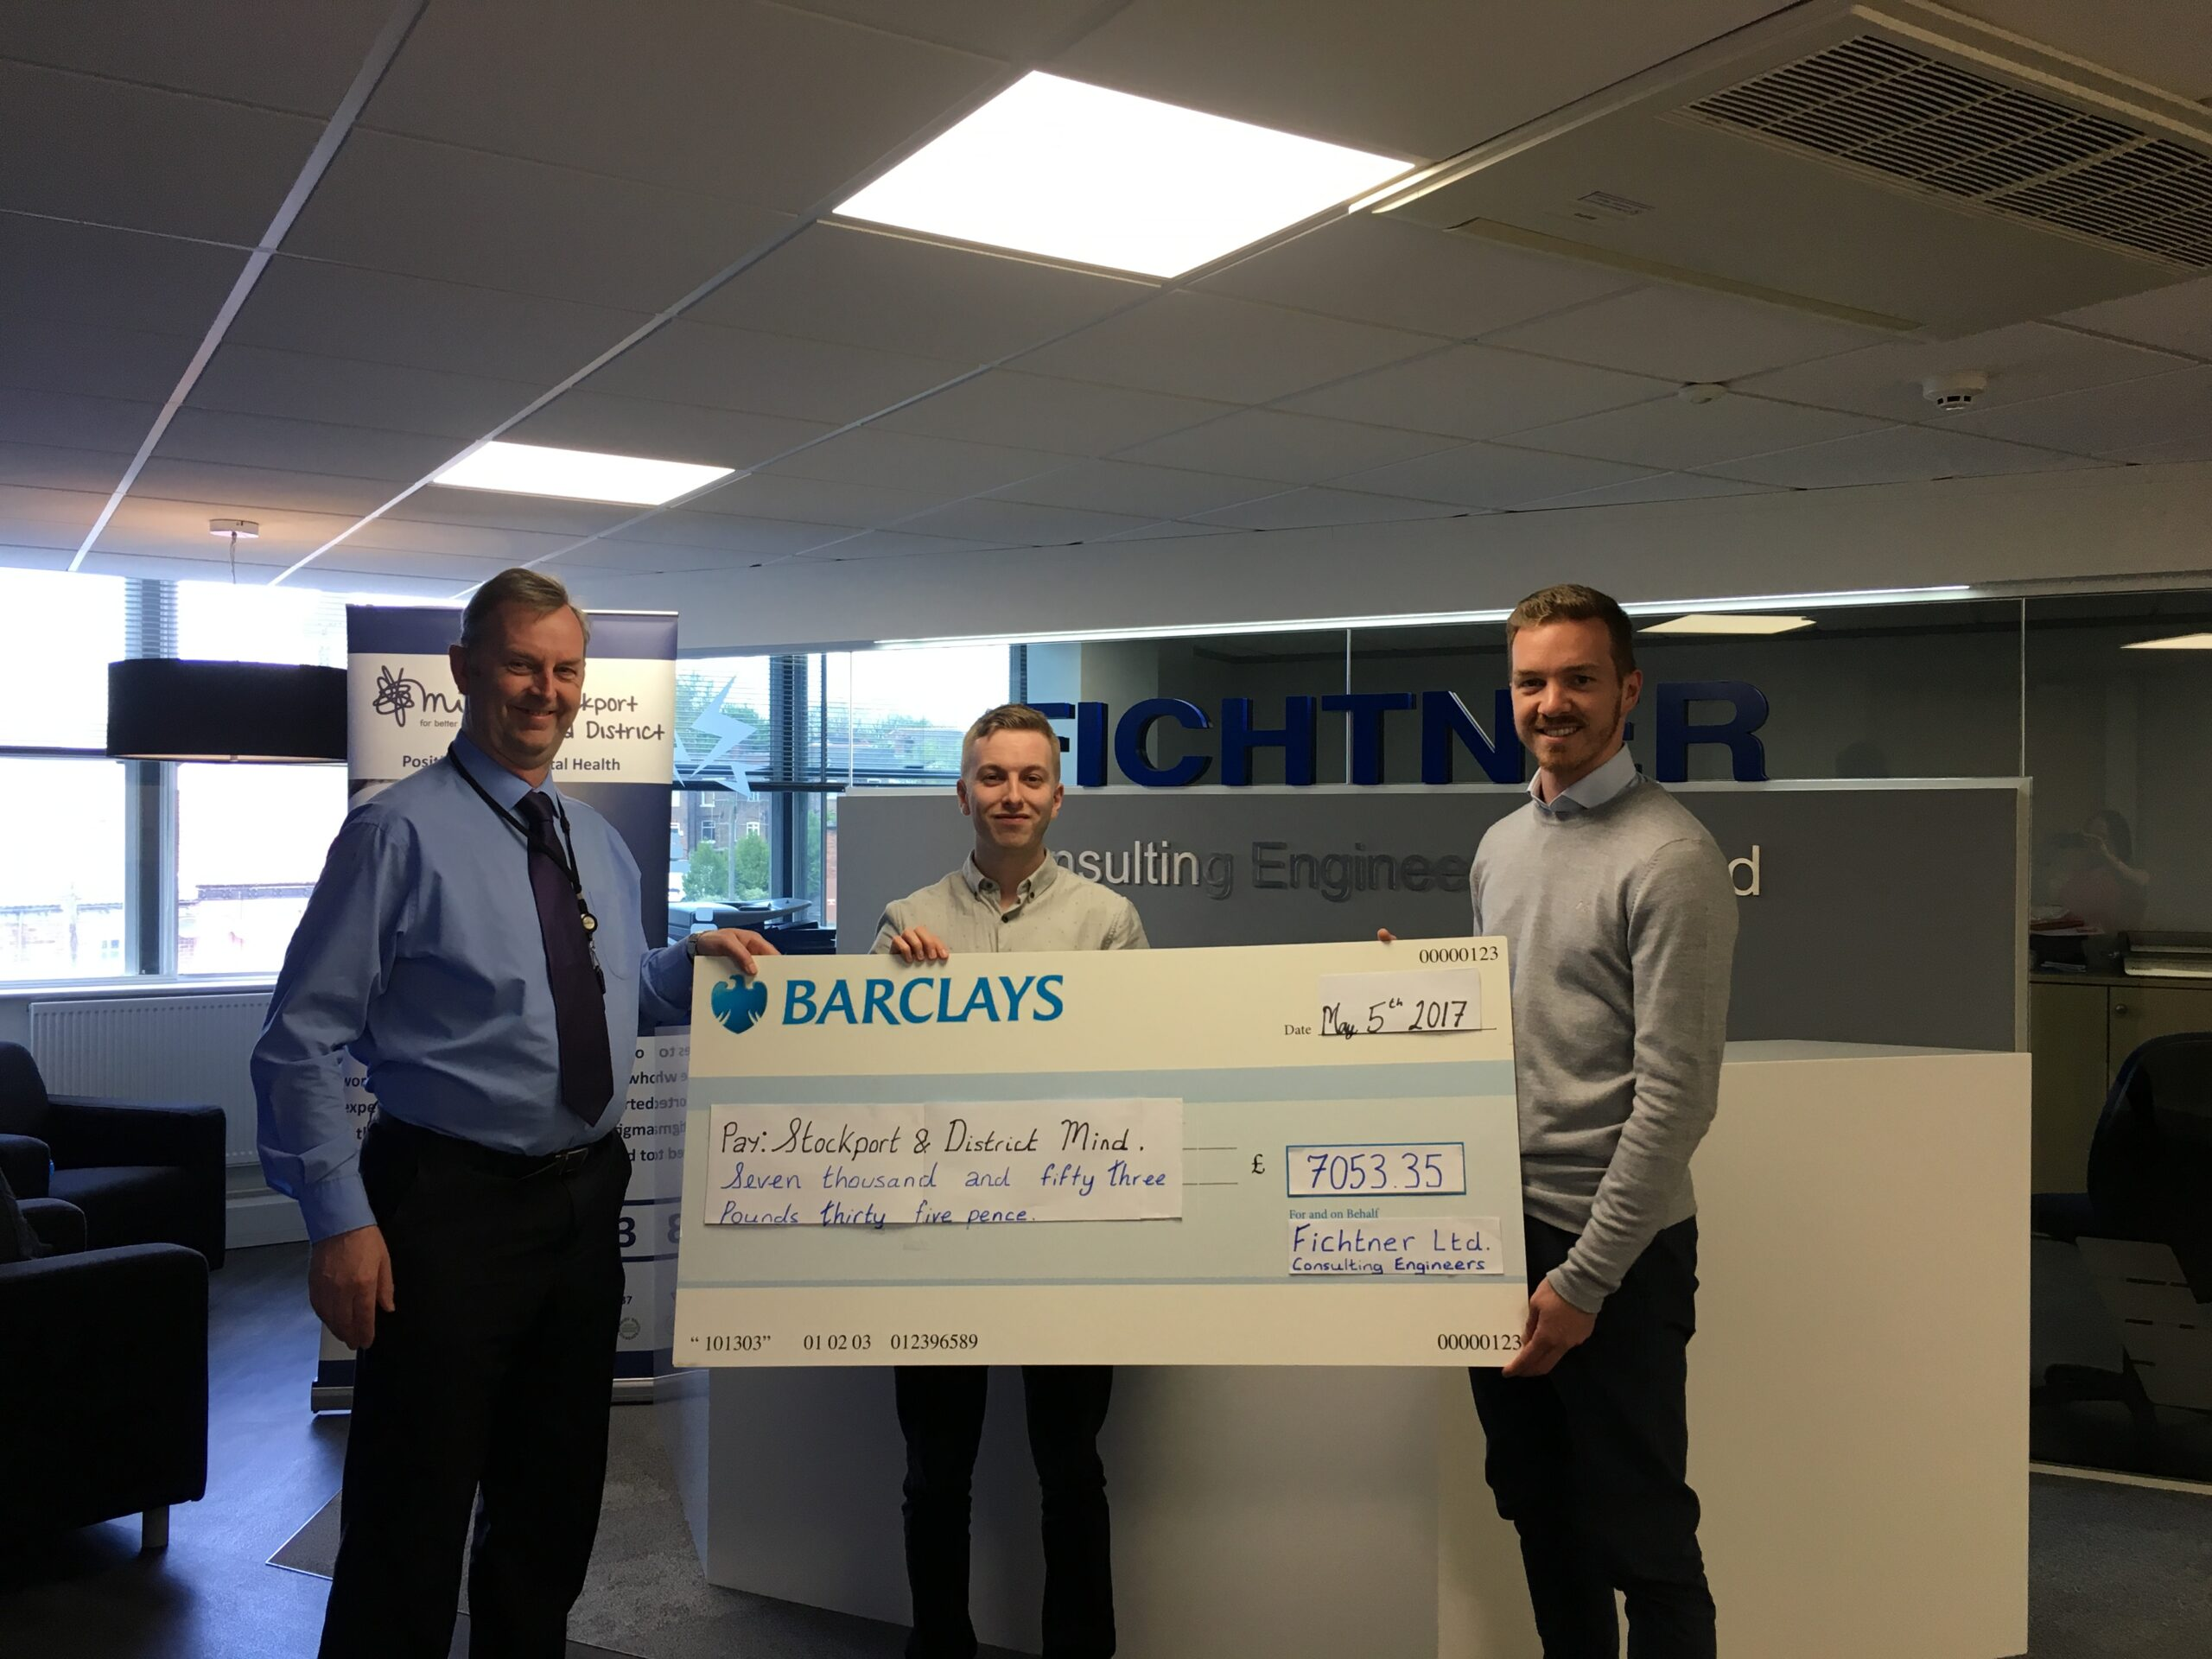 Fichtner present us with Big Cheque for £7053.35 fundraising total